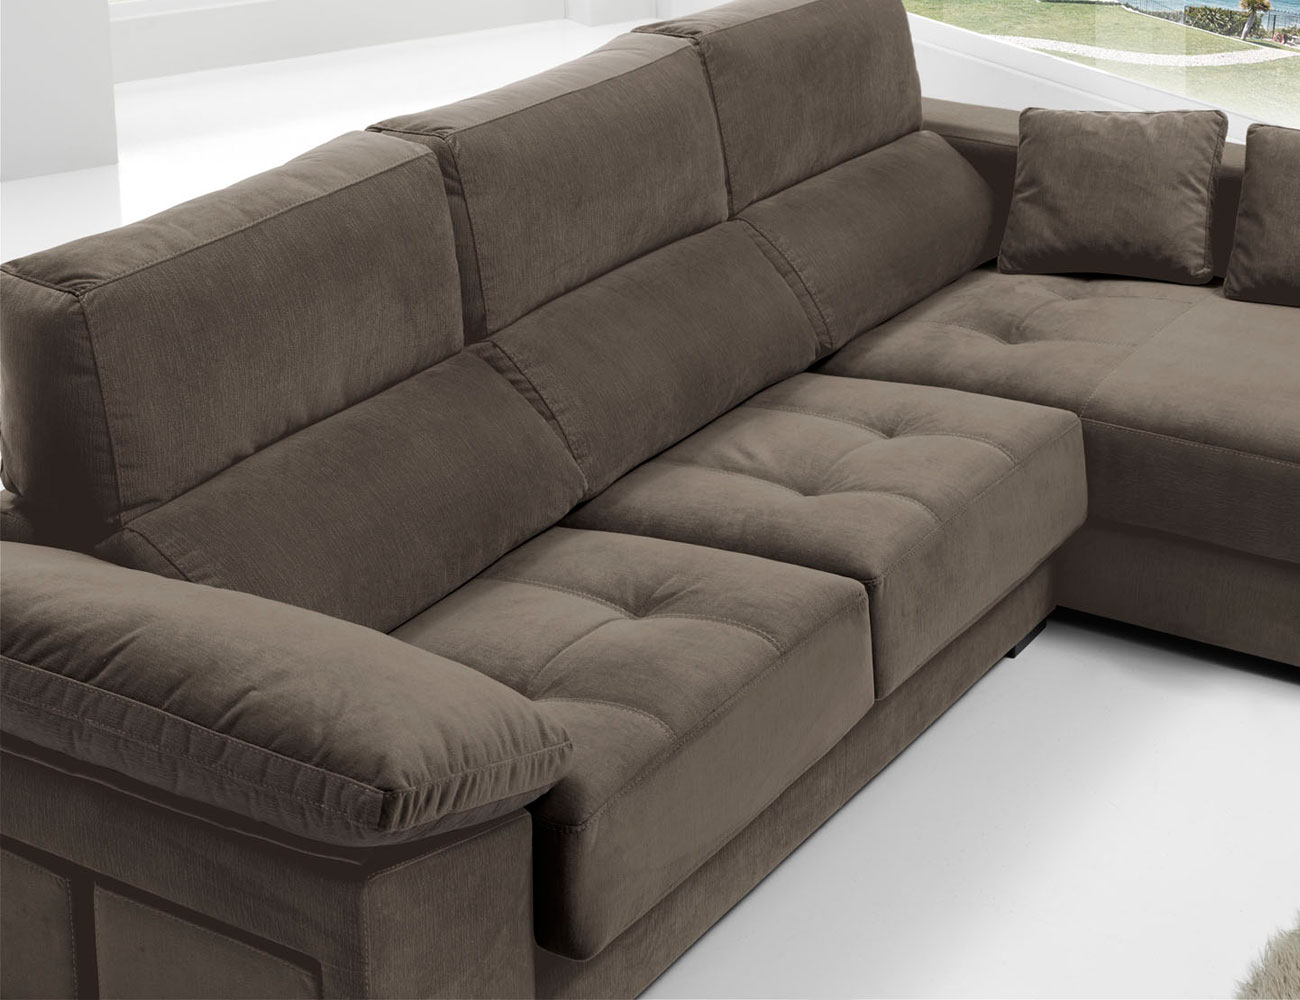 Sofa chaiselongue anti manchas bering pouf 288